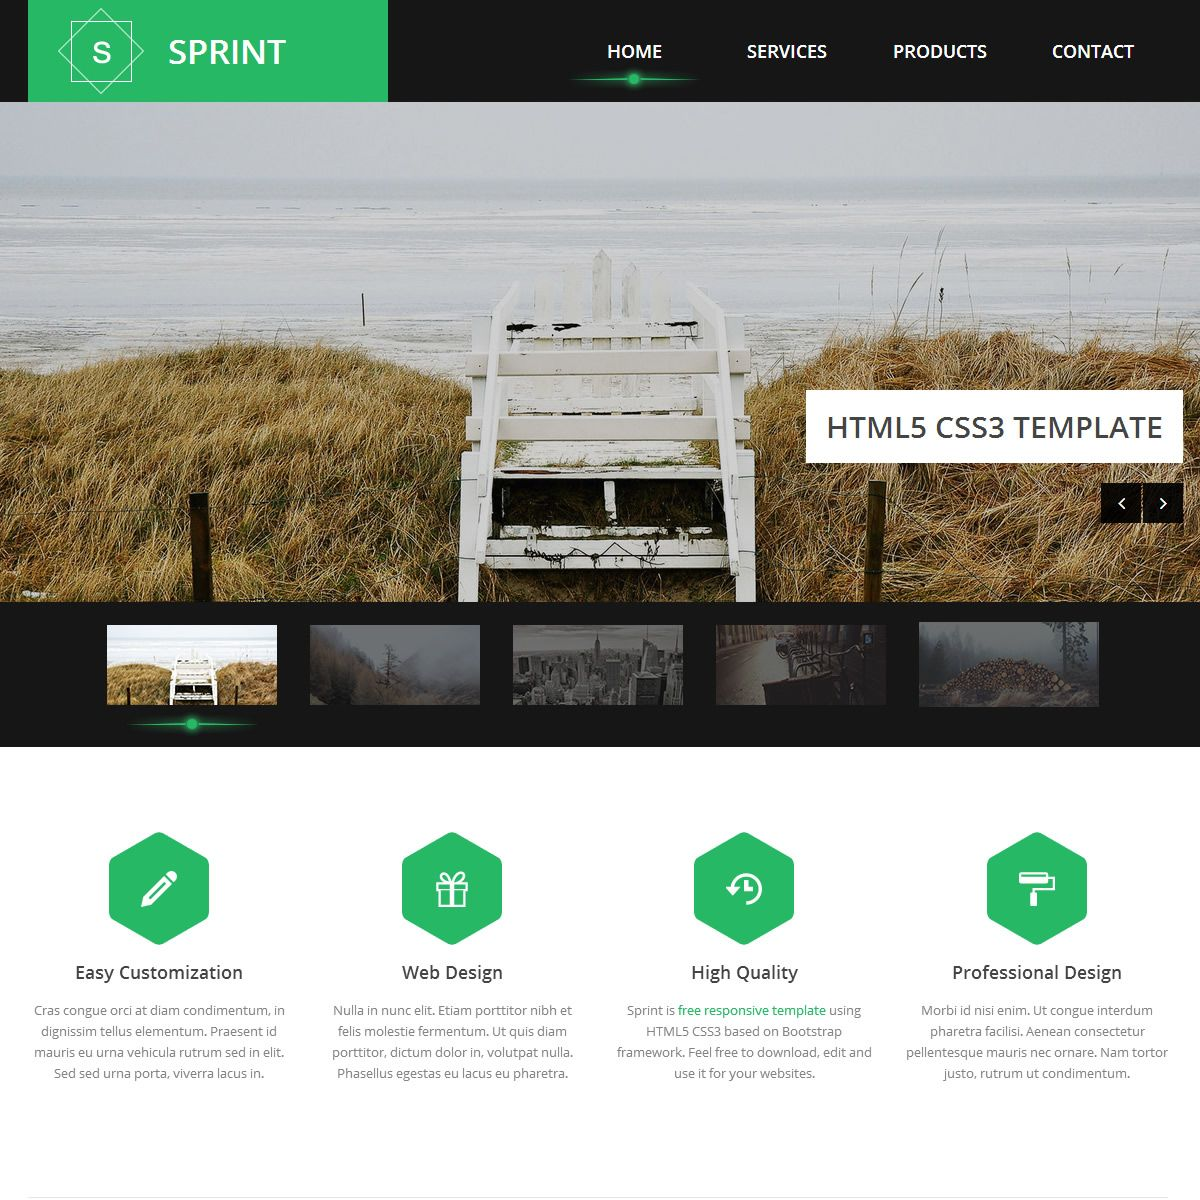 Website Templates Sprint Is Free Html5 Template On Responsive Bootstrap Framework